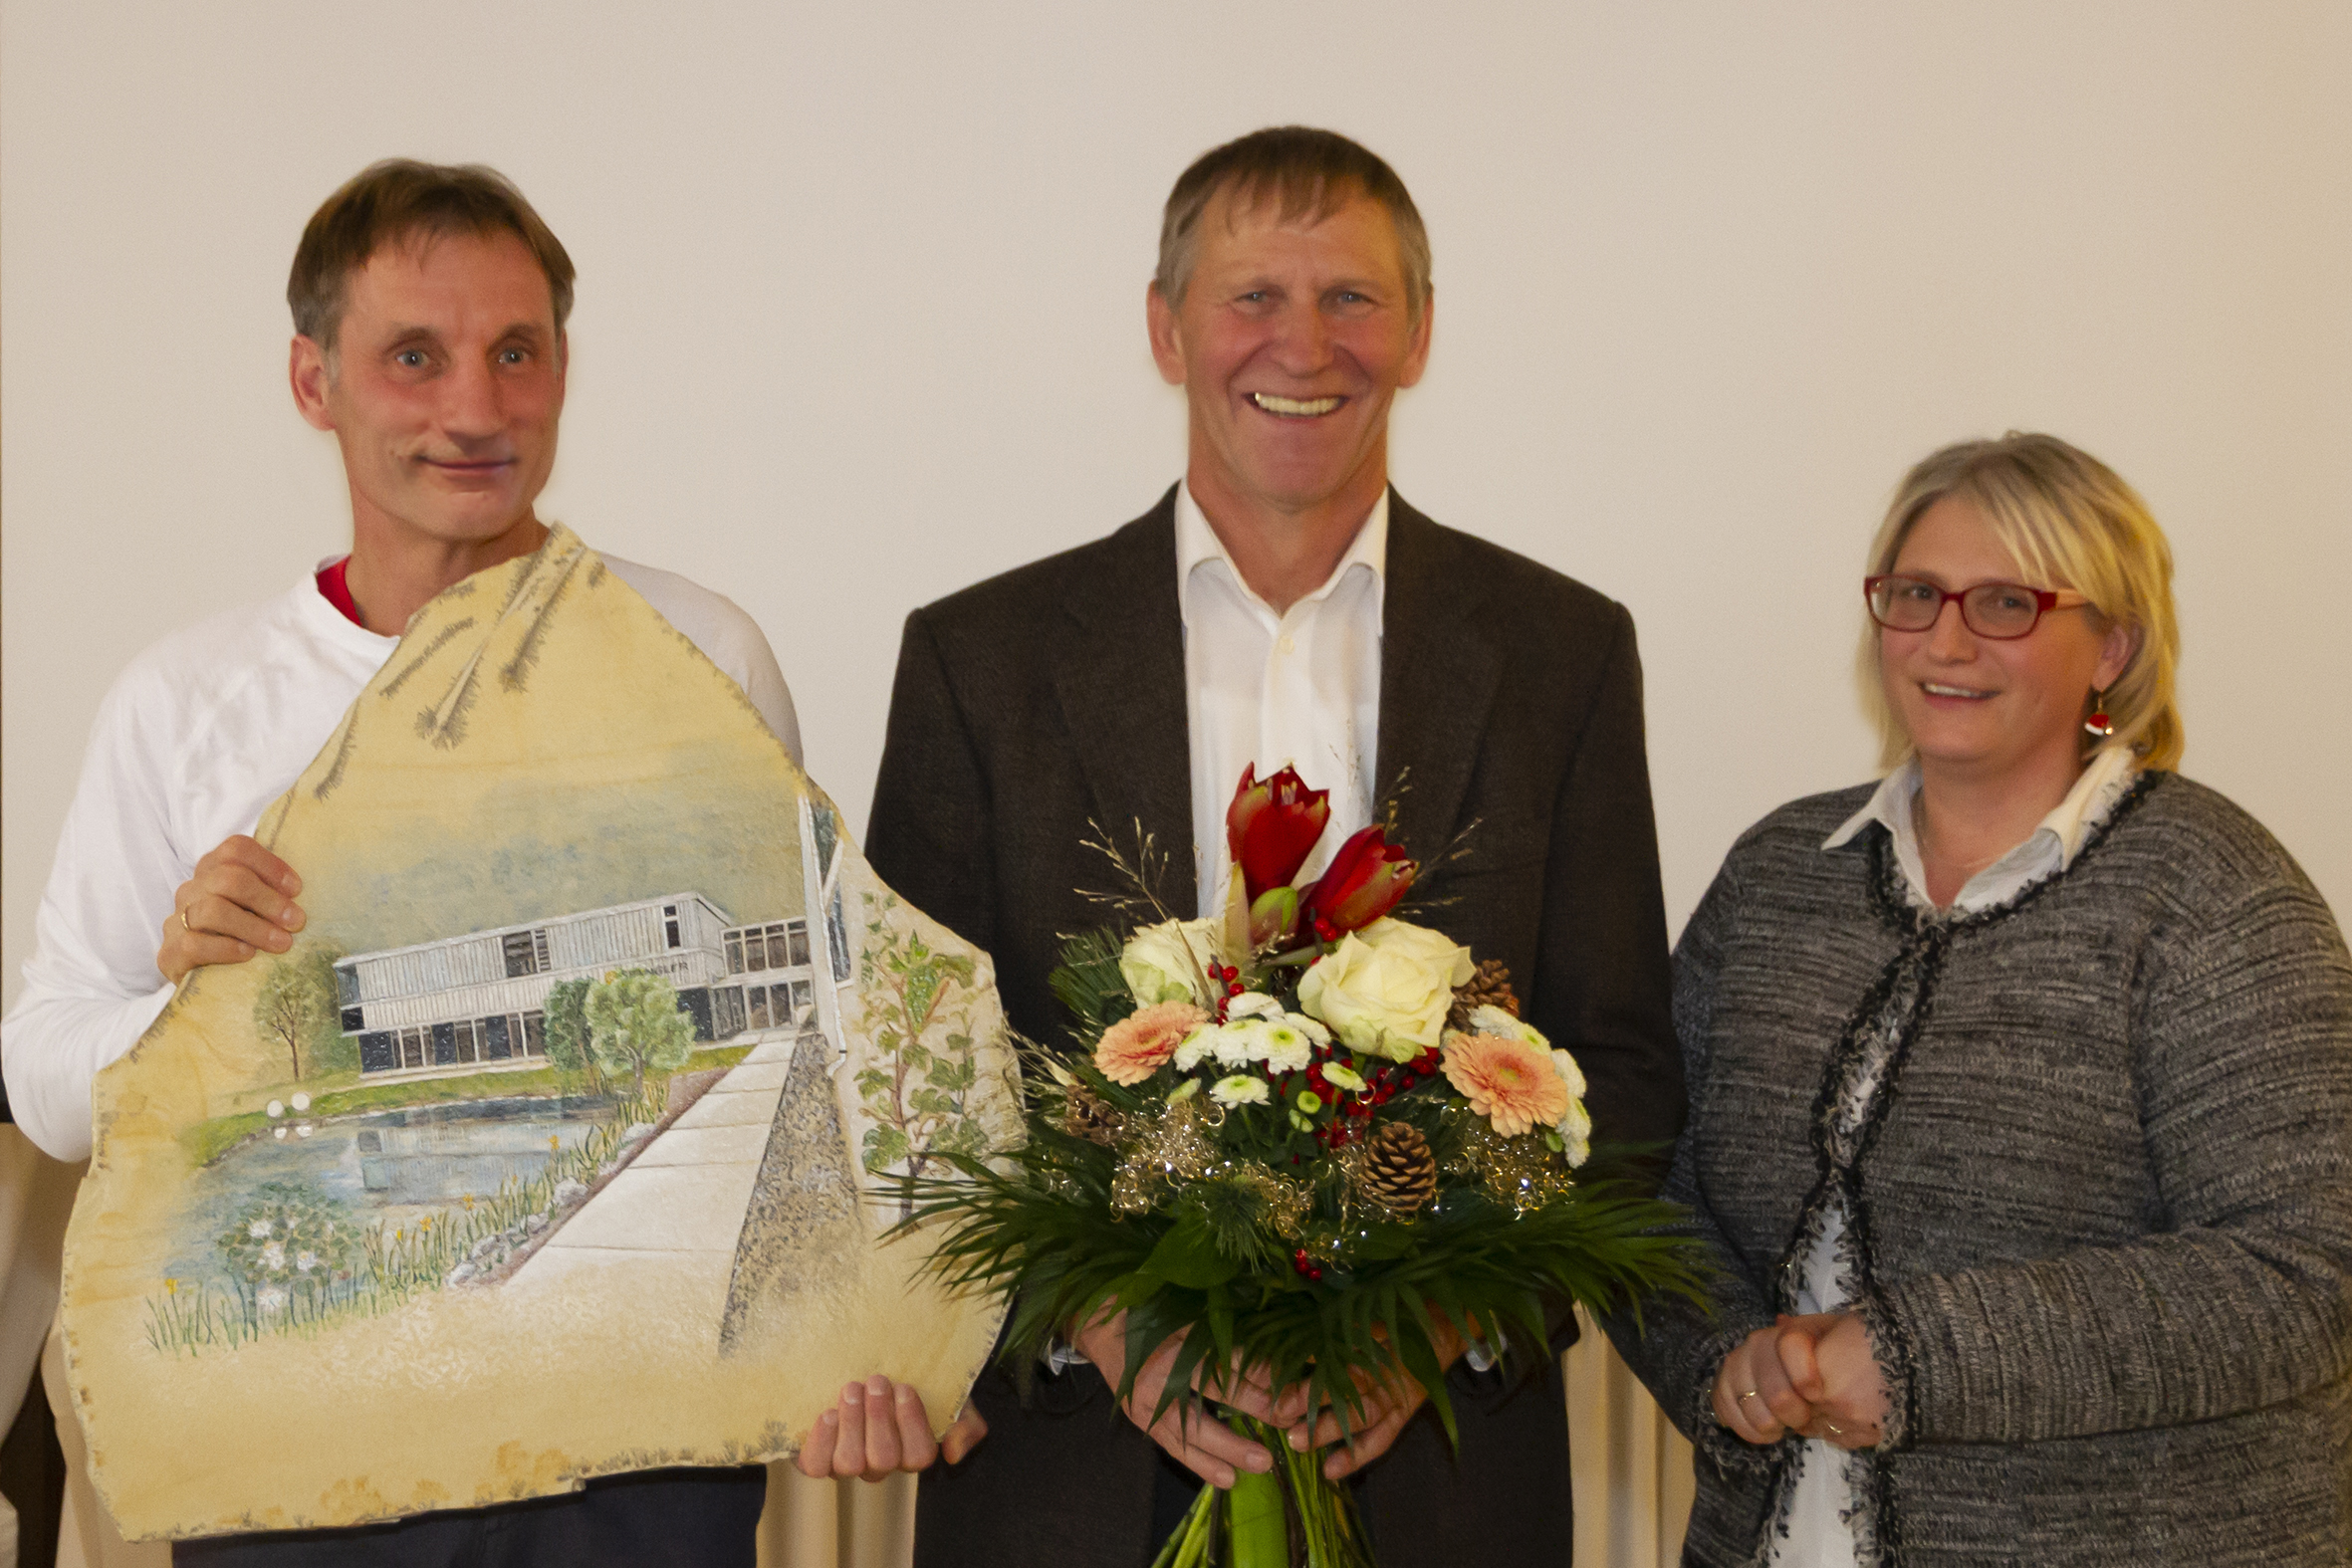 Long-term employees Martina Glas and Huber Rackl presented special gifts